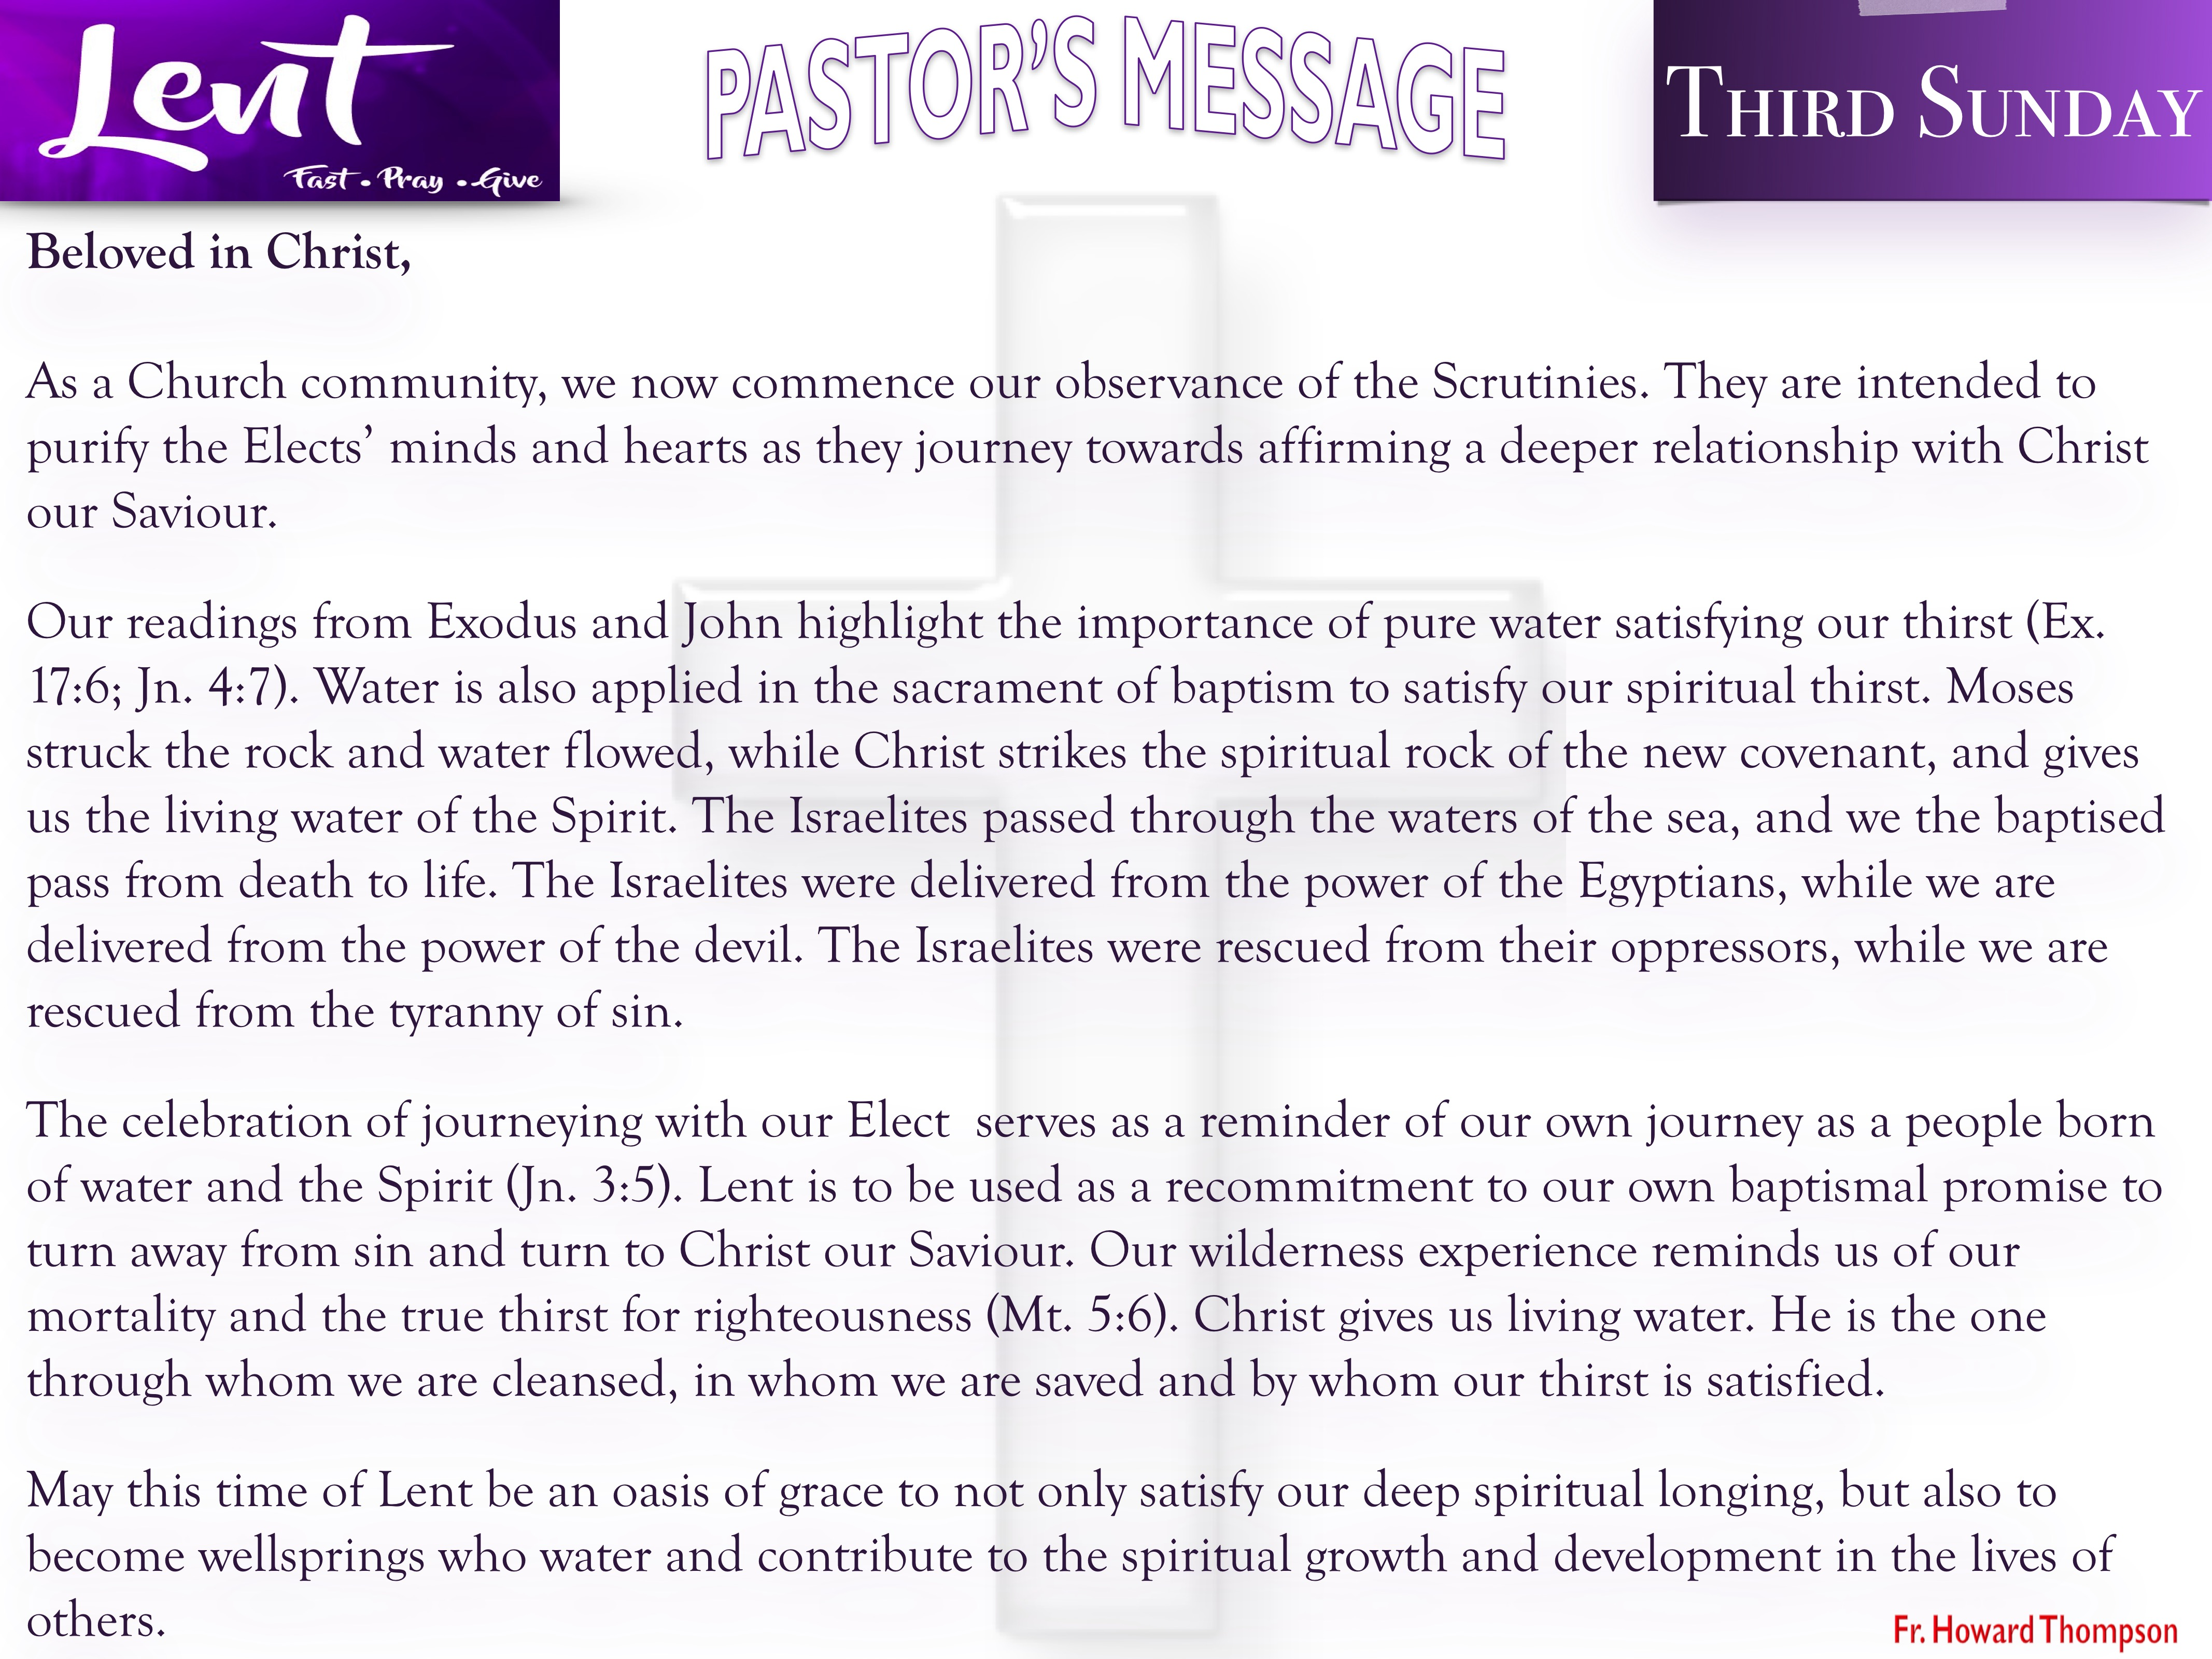 Pastor's Message - 08 Third Sunday of Lent_001